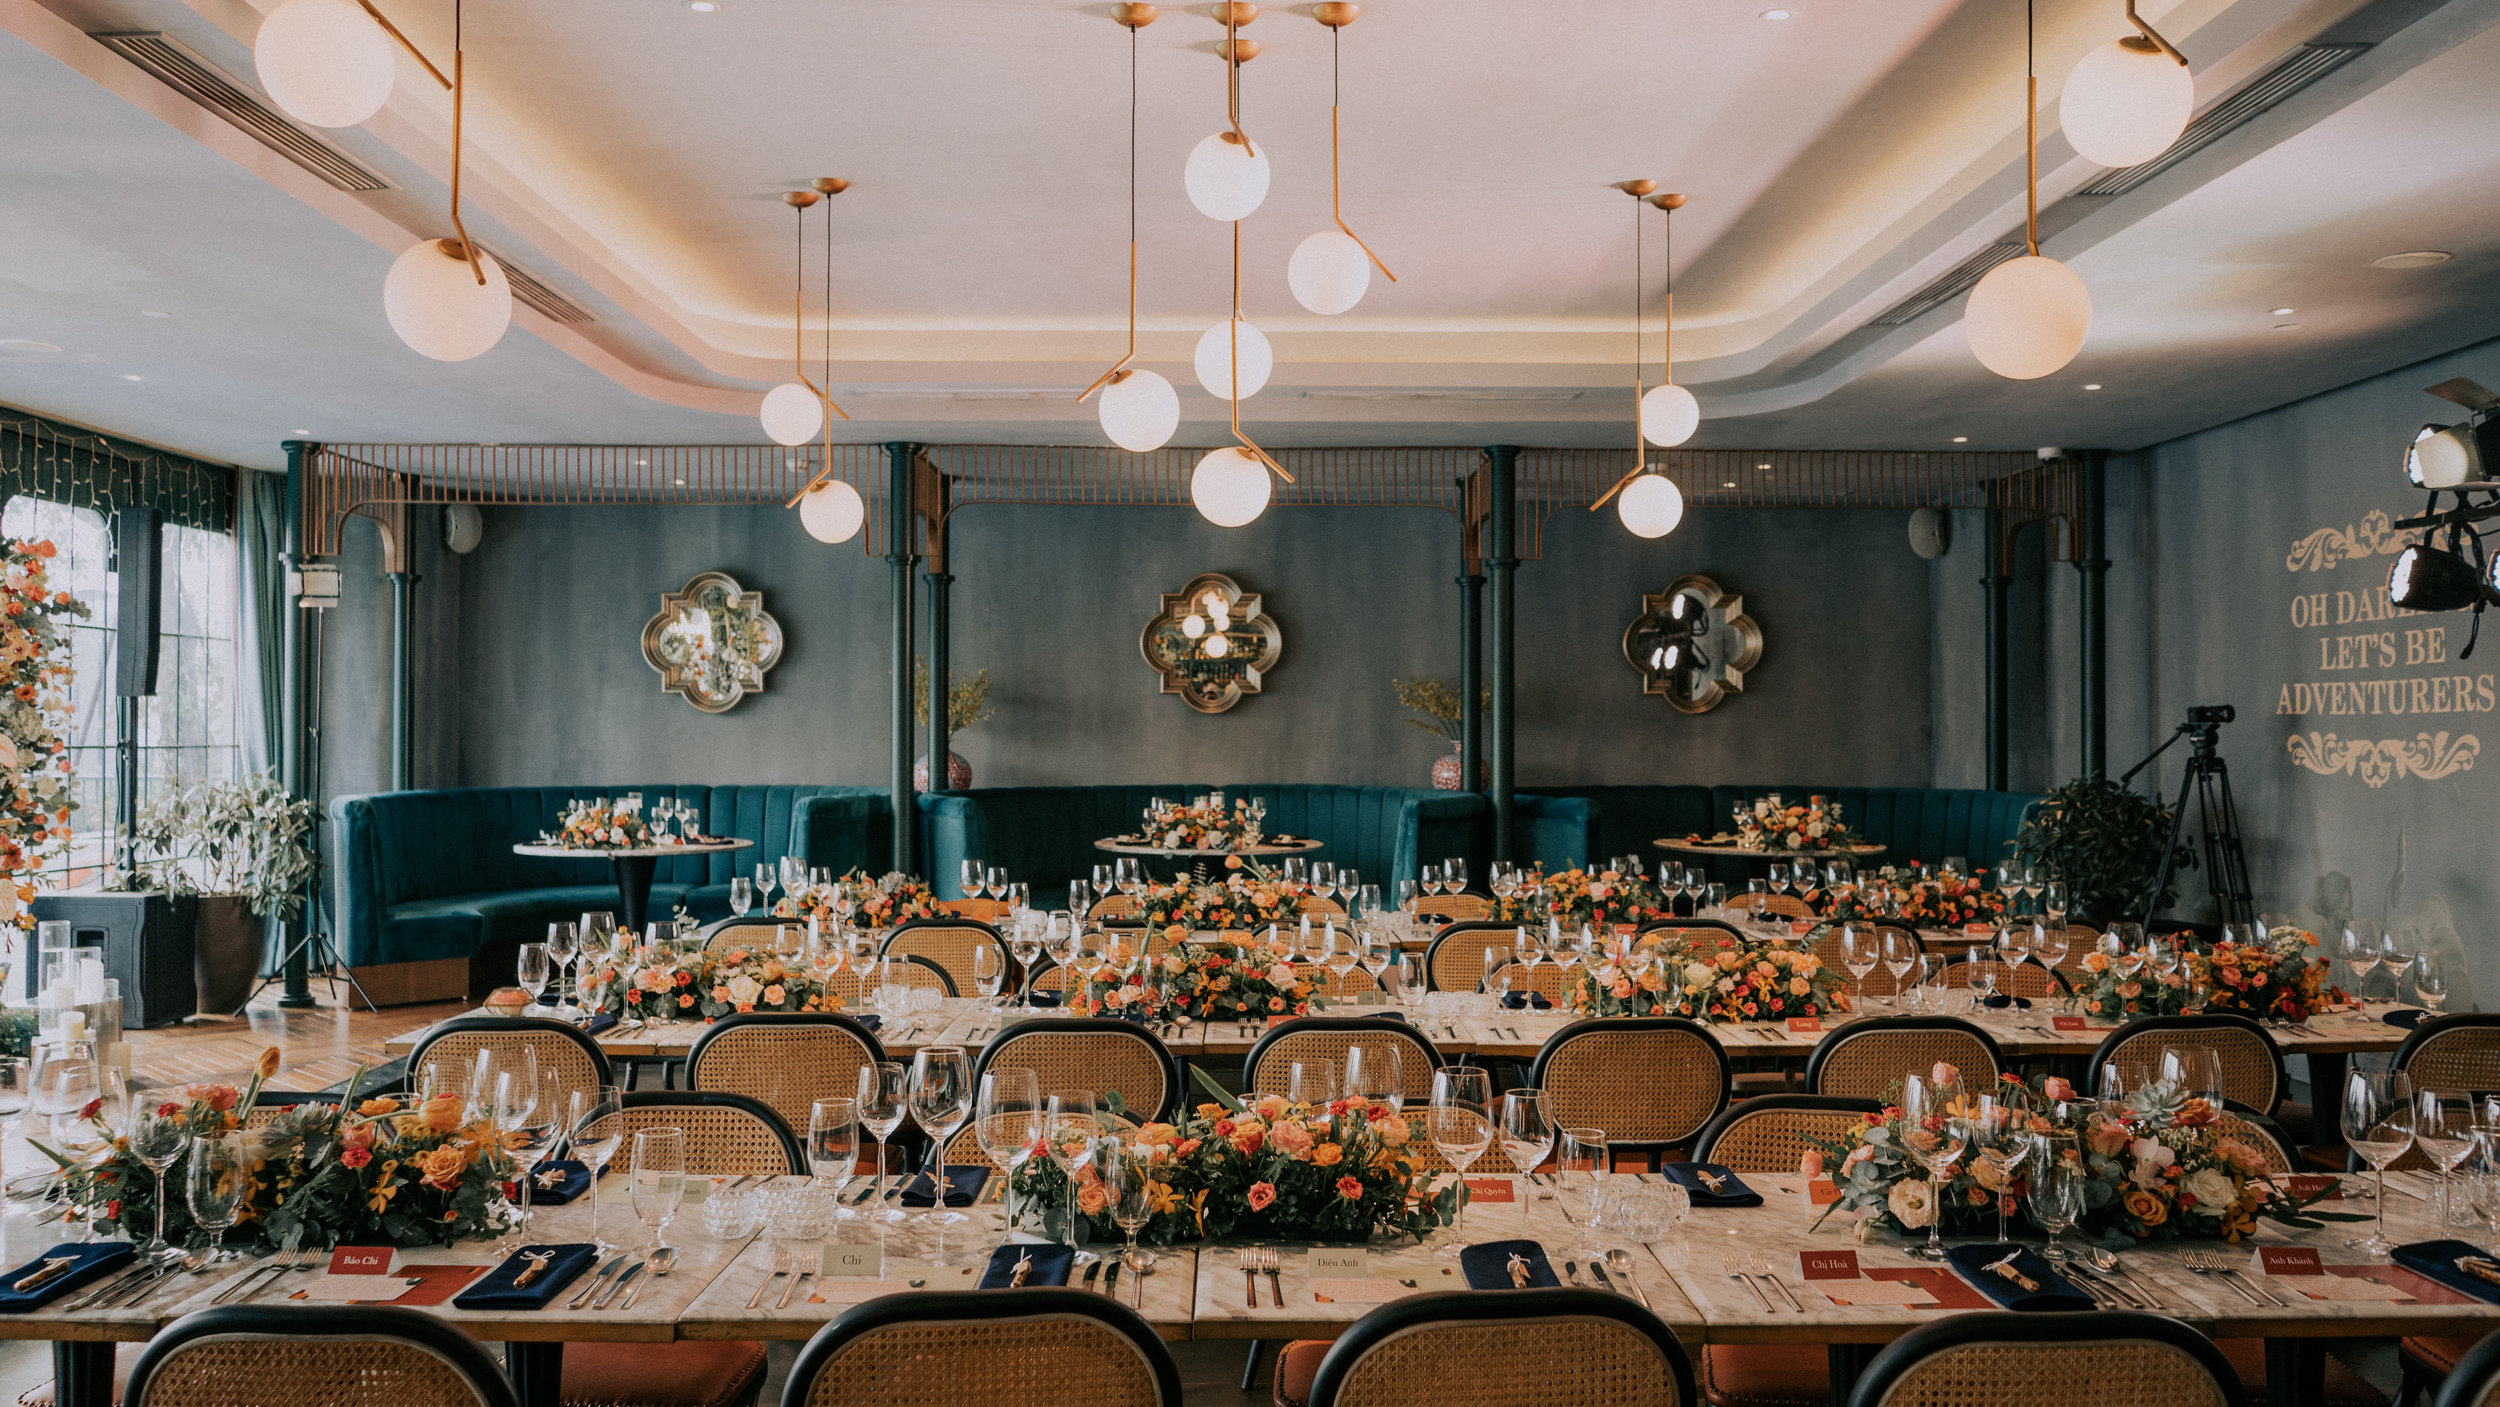 ROARING 20s - Giang & Leo intimate wedding with a vibe of the 20s